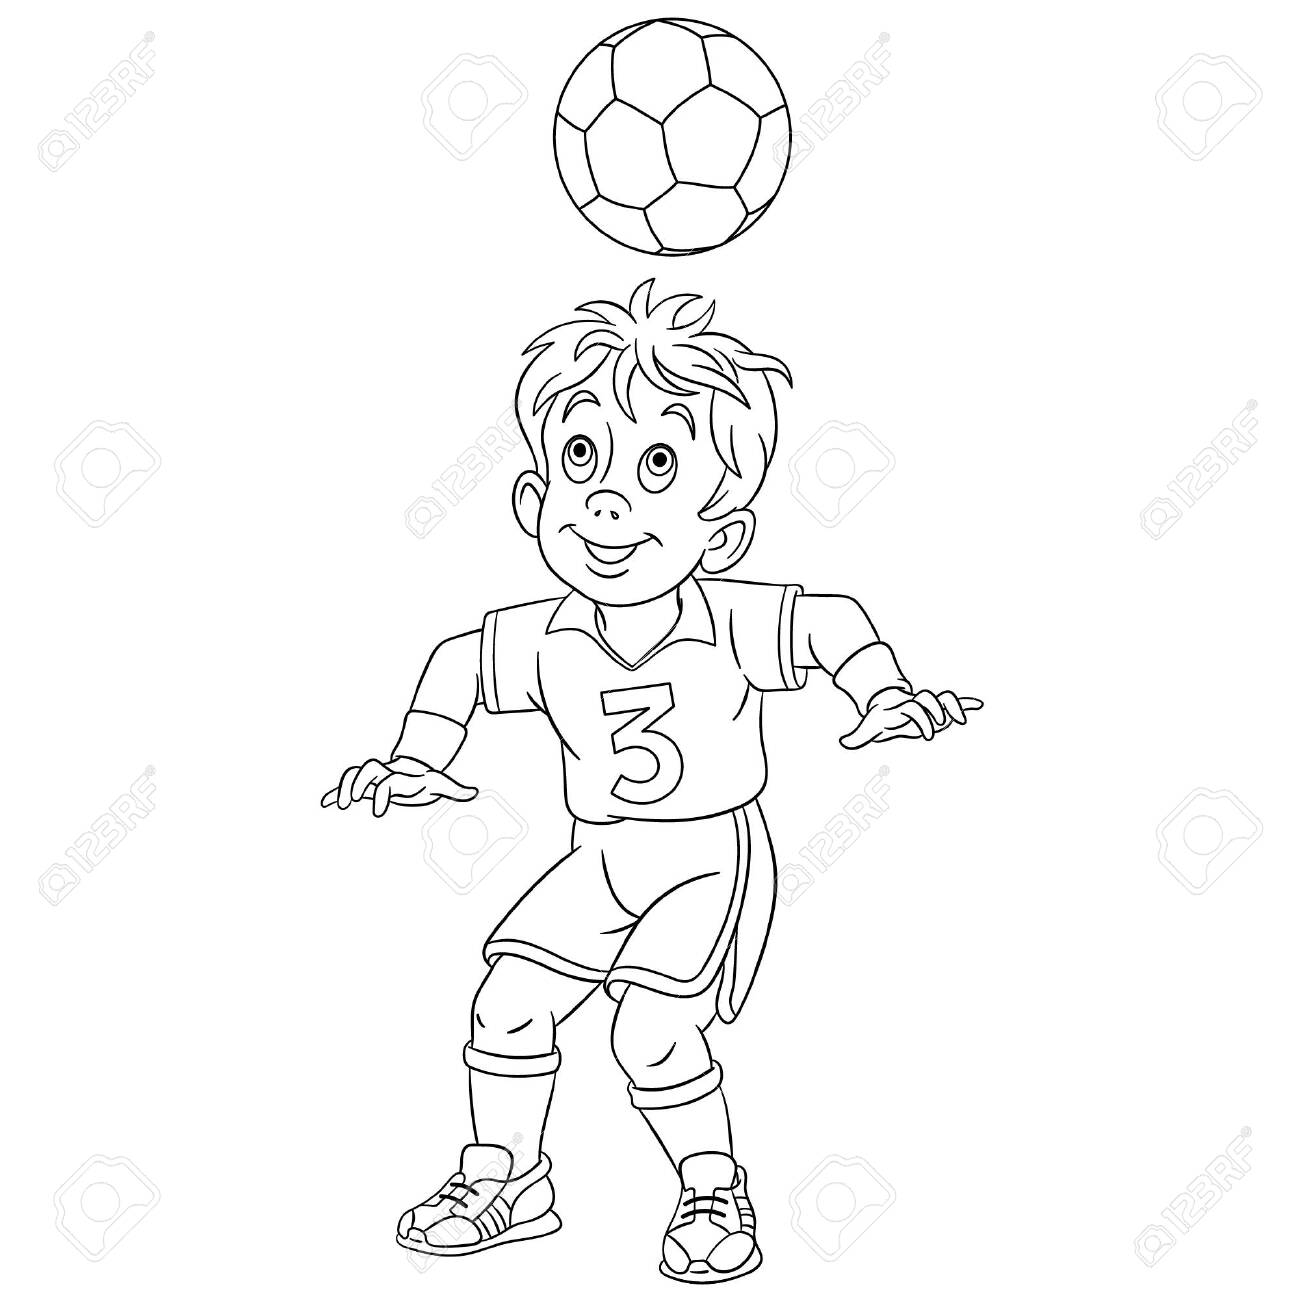 Coloring Pages Football Player | Football coloring pages, American ... | 1300x1300